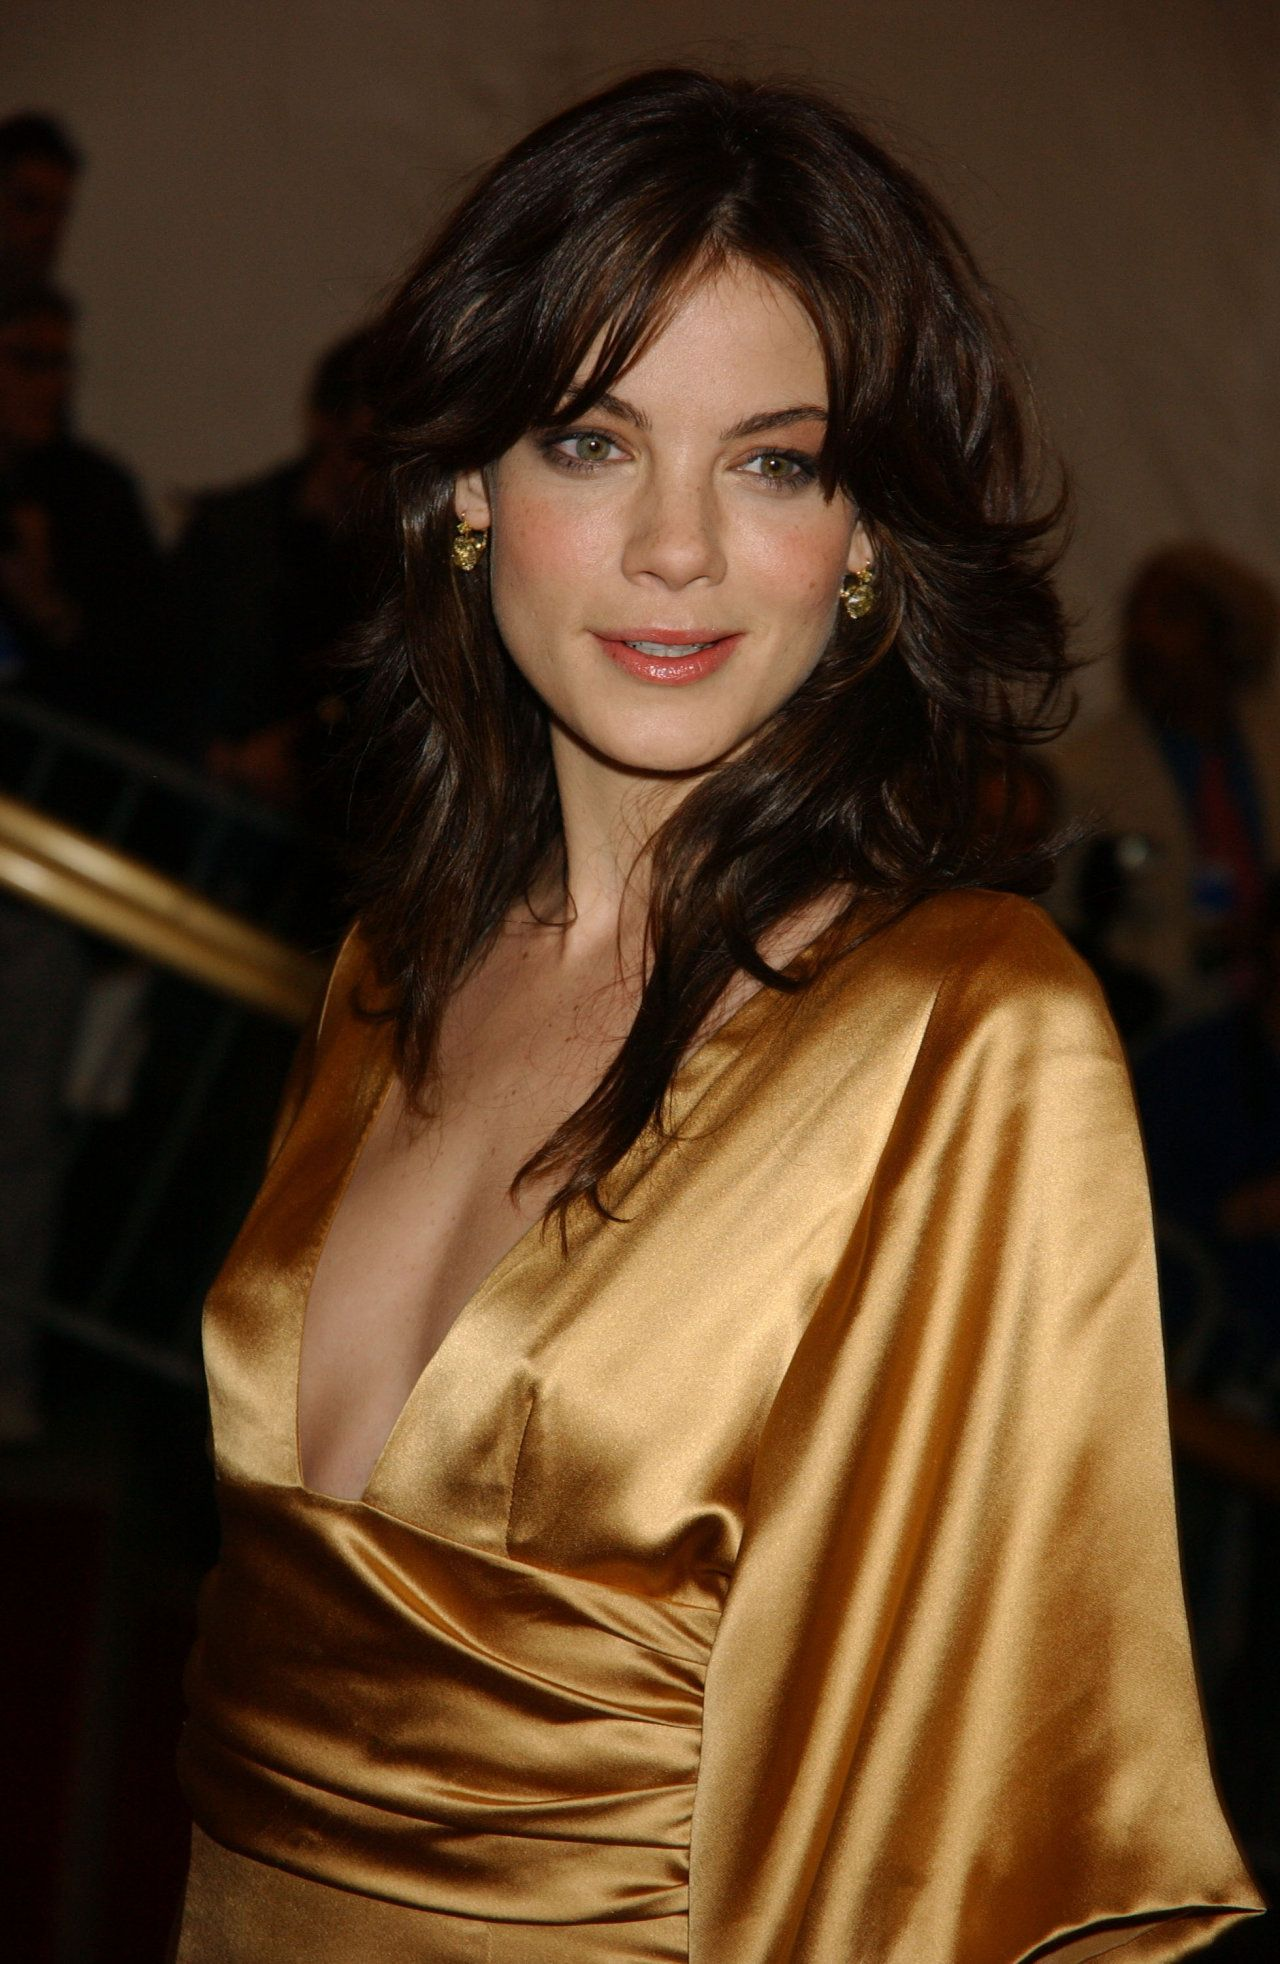 Paparazzi Cleavage Michelle Monaghan naked photo 2017